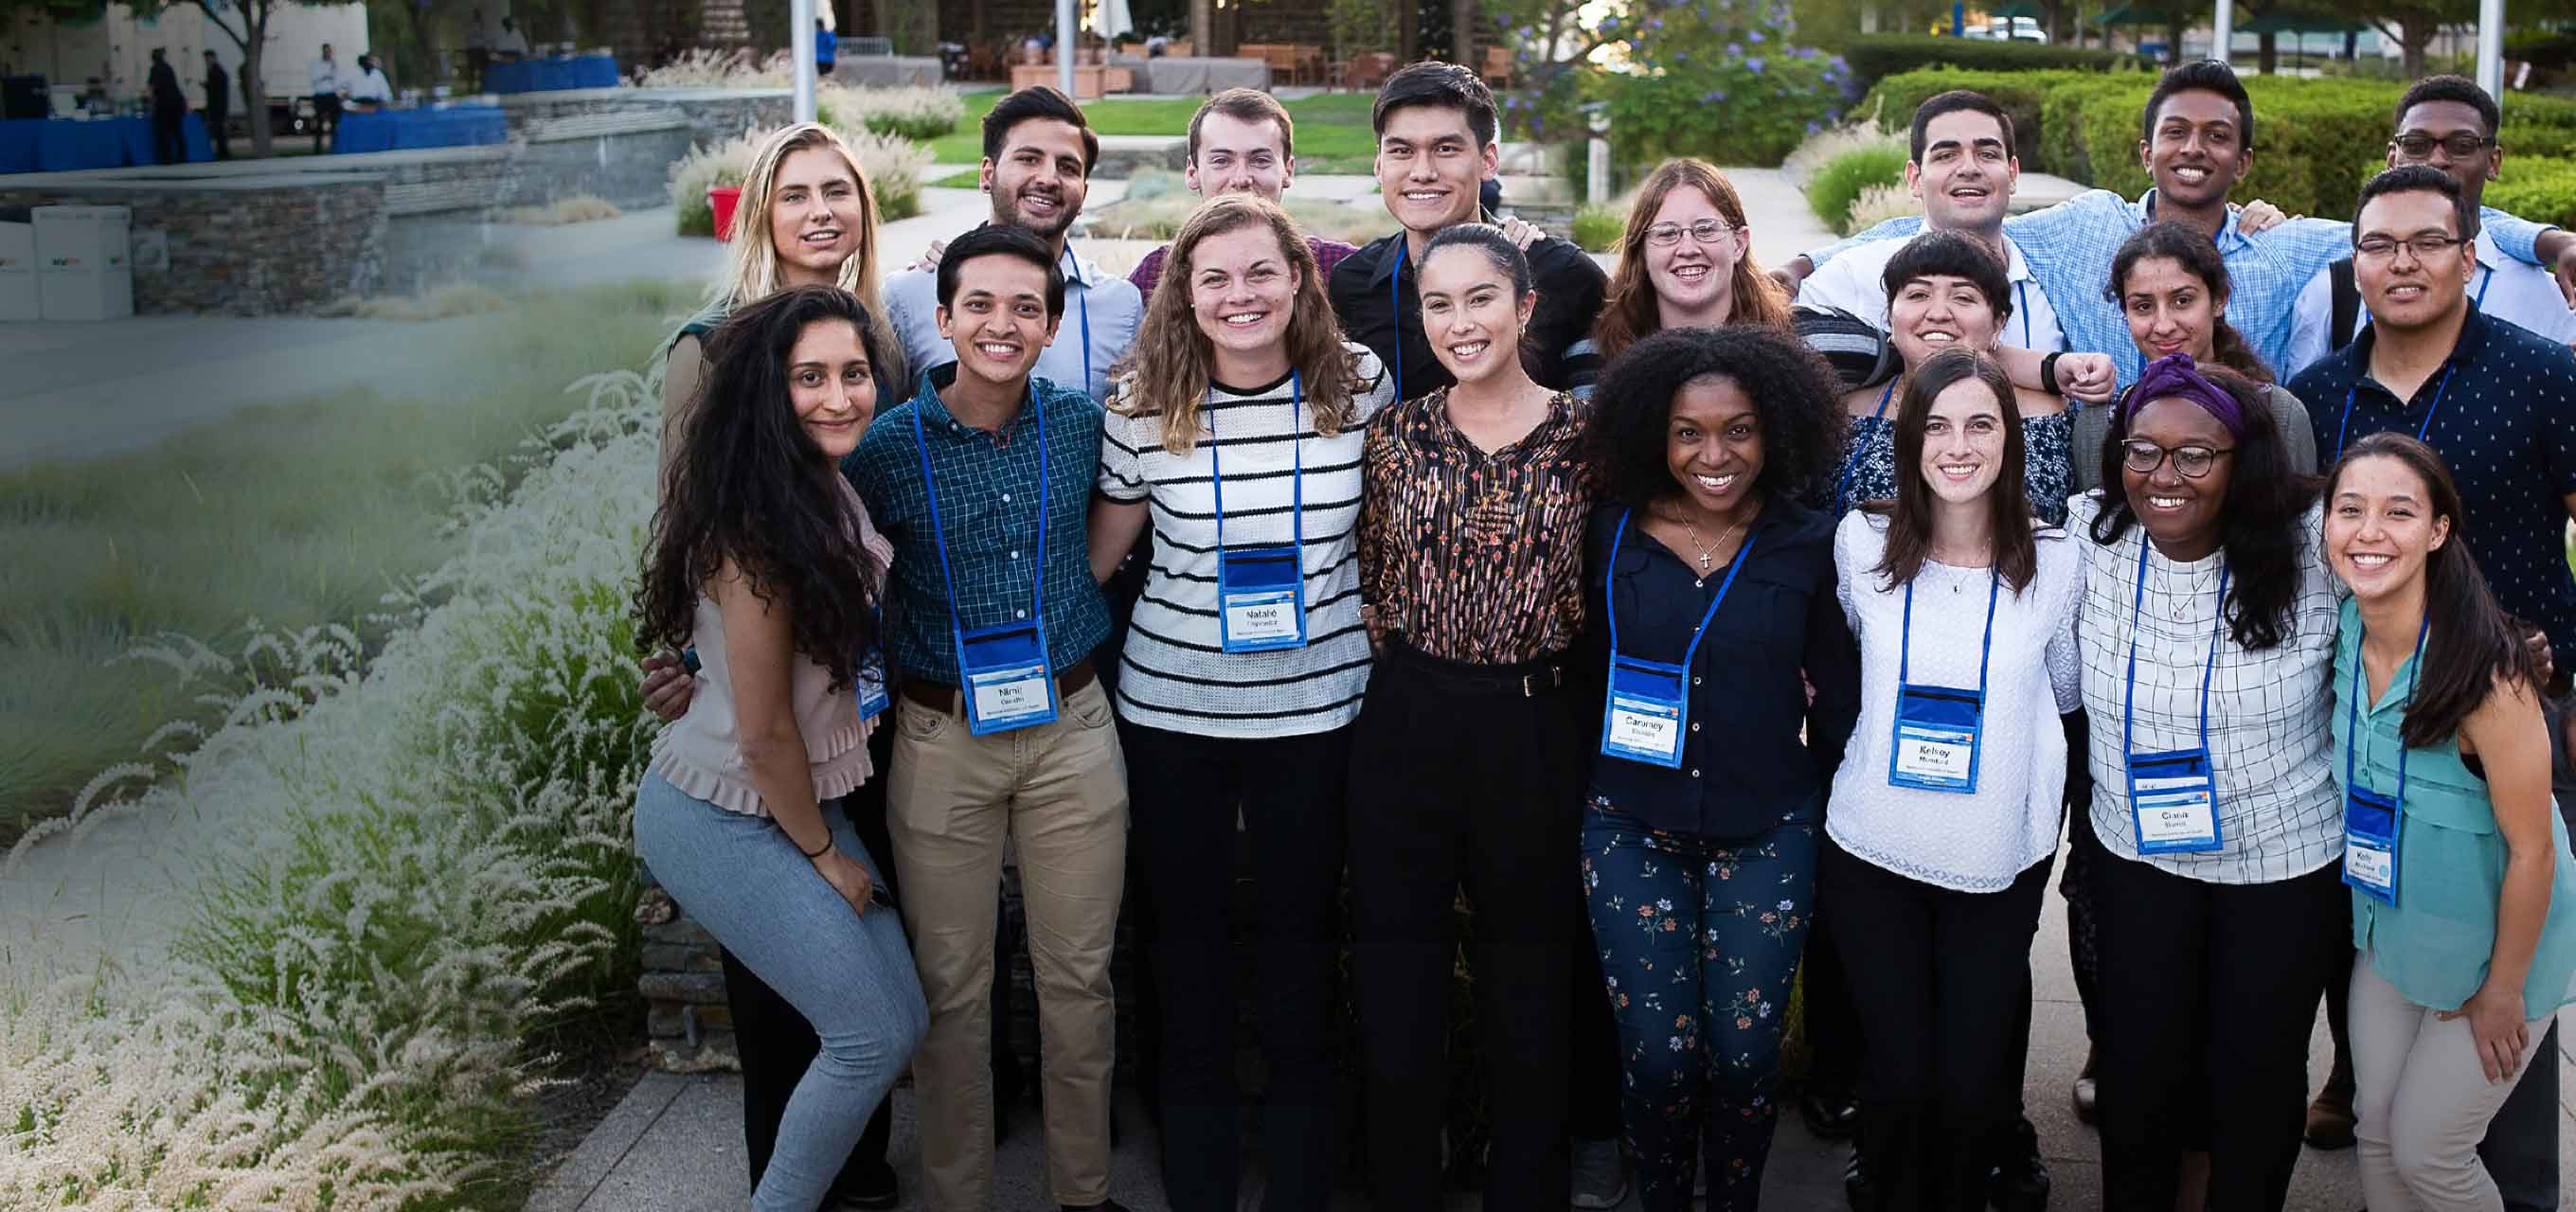 Amgen Scholars have represented more than 700 colleges and universities to date